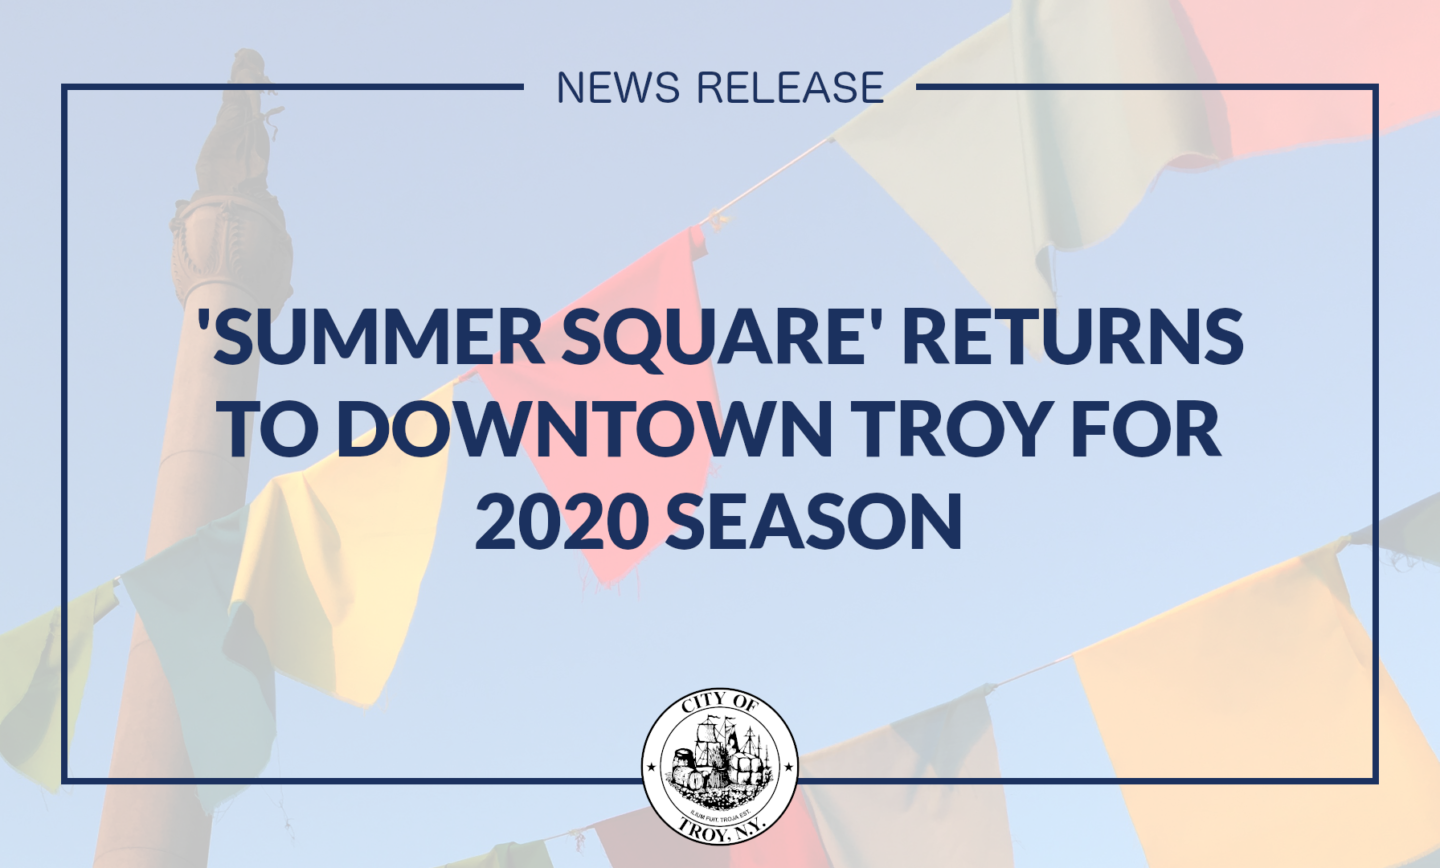 Mayor Madden Announces Return of 'Summer Square' Program to Downtown Troy for 2020 Season